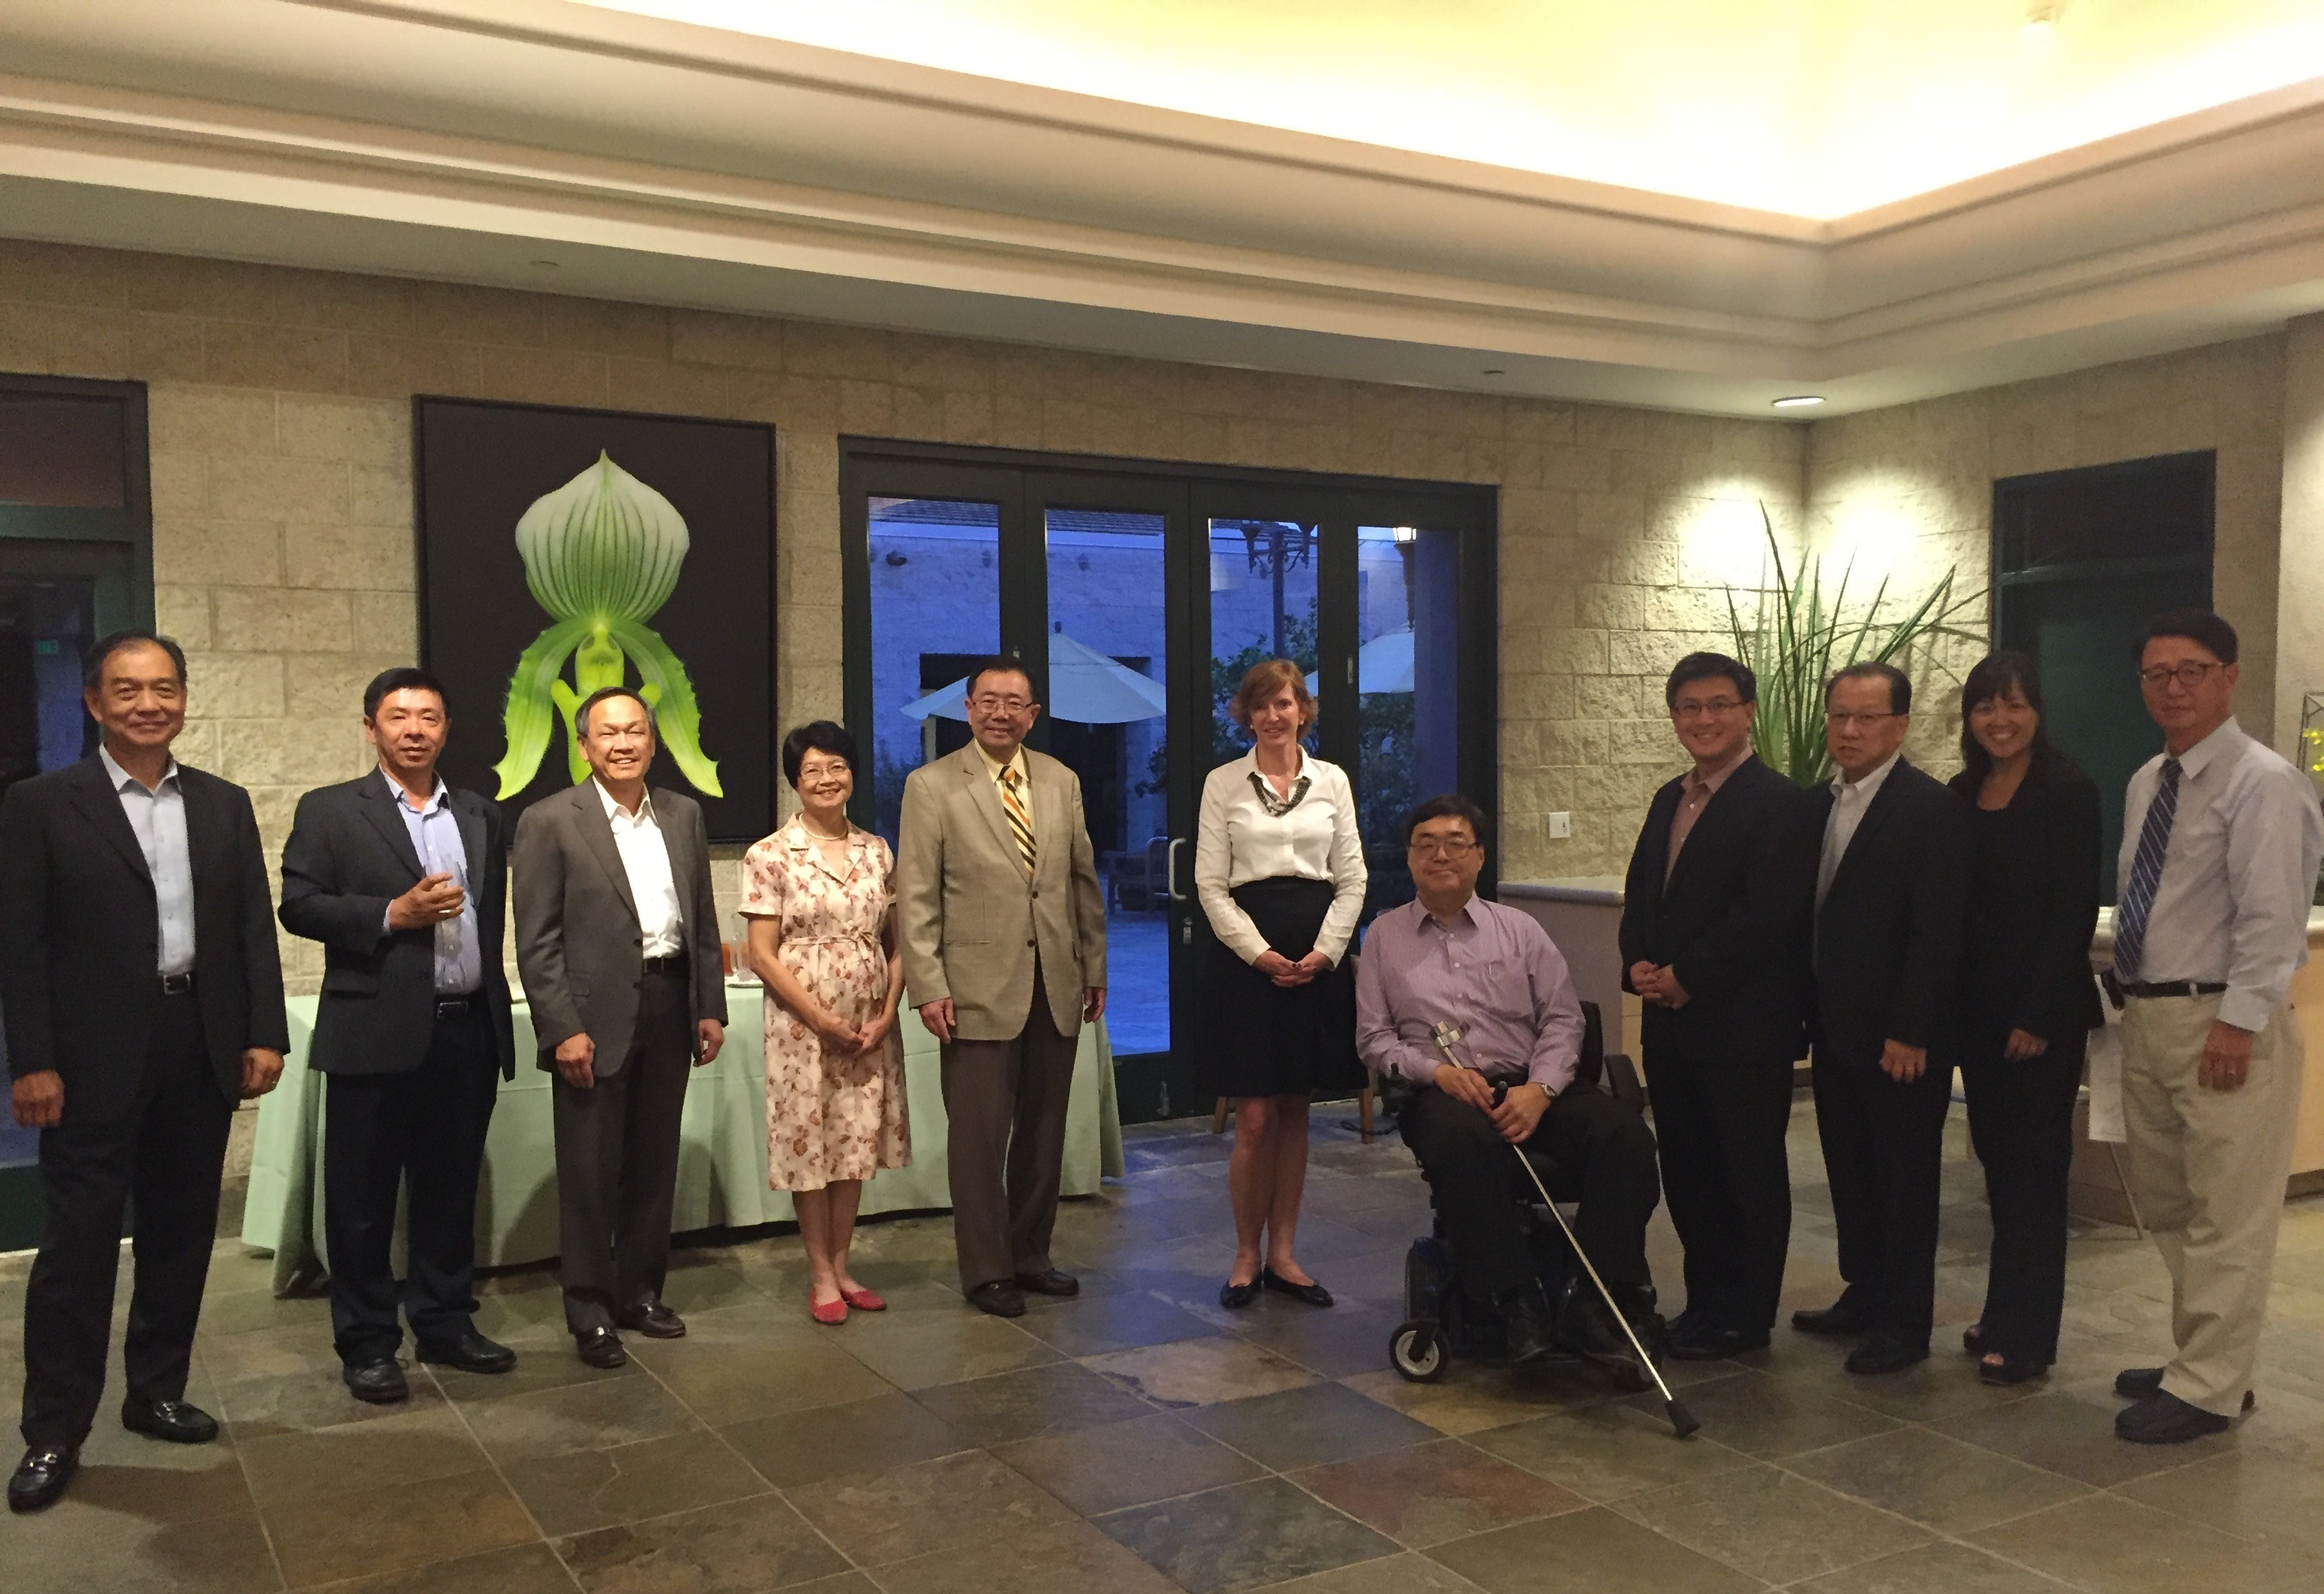 C-100 Members with President Laura Trombley of Huntington Library Prior to the Meeting From left to right: David Lee, Richard Lee, John Long, Pat Kwoh, Stewart Kwoh, Laura Trombley, Charlie Woo, John Chiang, Herman Li, Julie Fong, Edmond Pi